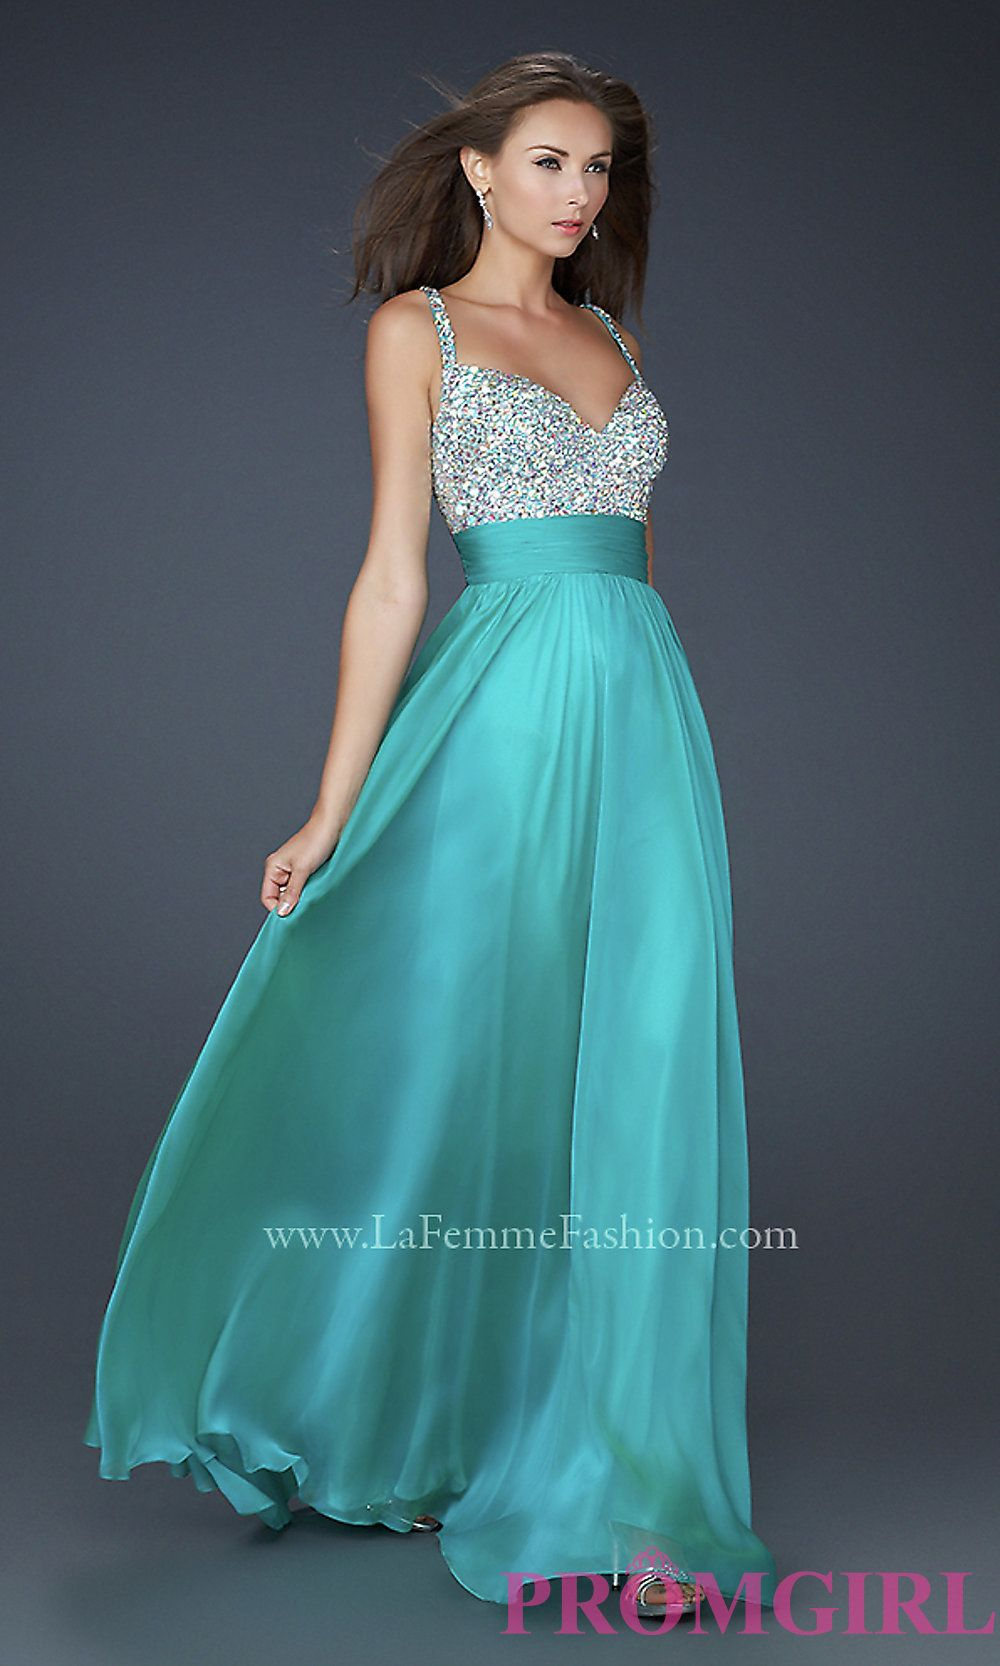 Gorgeous teal blue La Femme Prom Dress. The beautiful heart-shaped ...